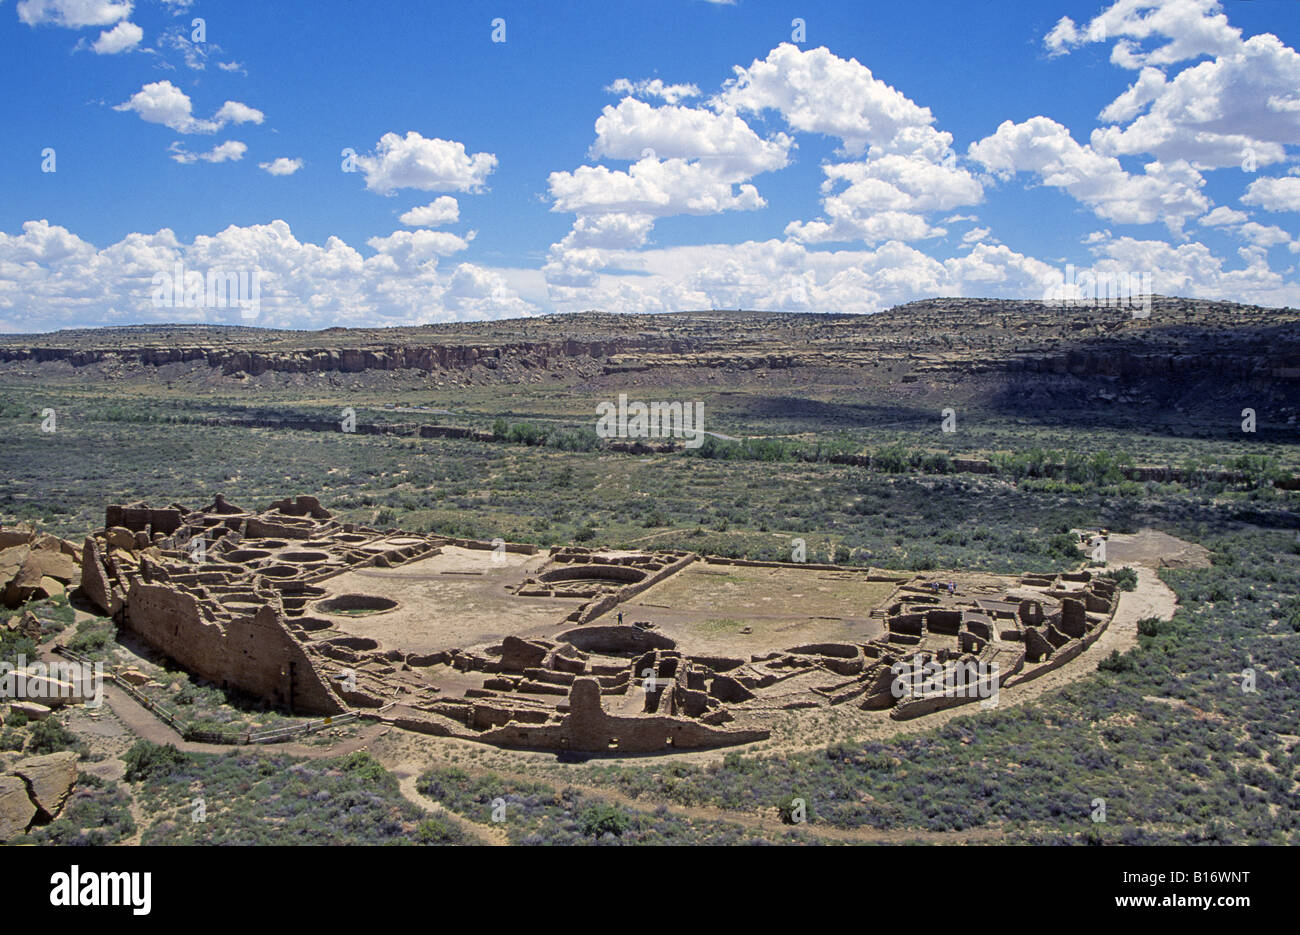 A view of Pueblo Bonito an ancient Anasazi Indian city in northwestern New Mexico - Stock Image